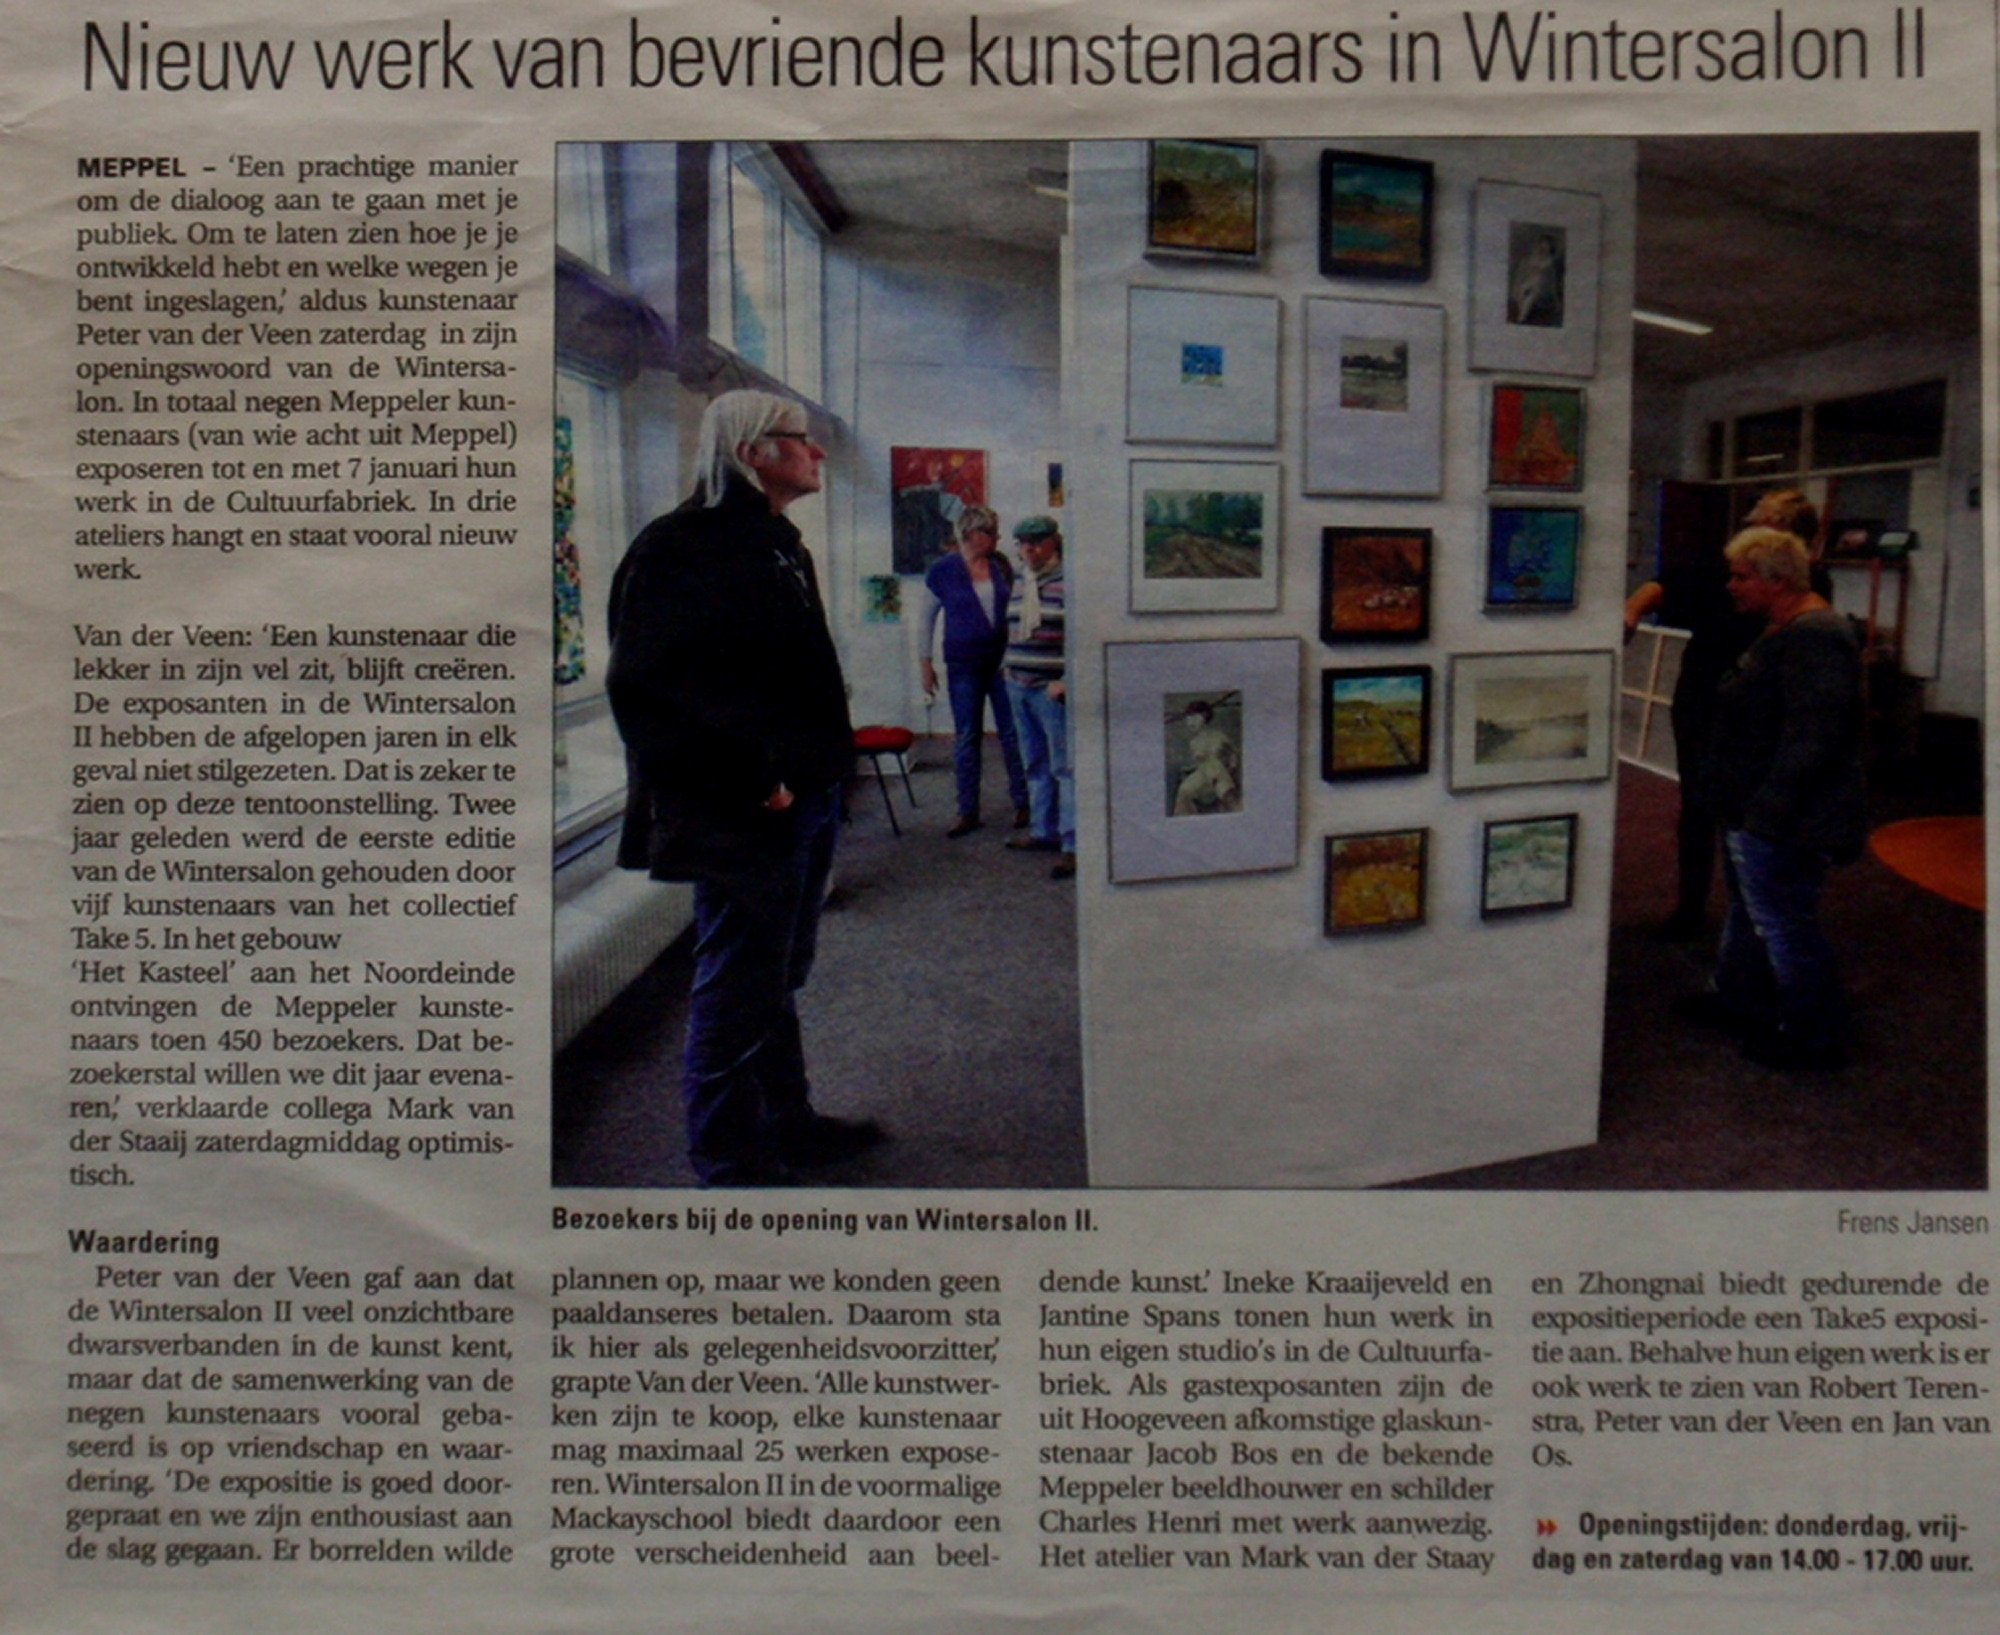 2011. Wintersalon Take 5 in de Cultuurfabriek.